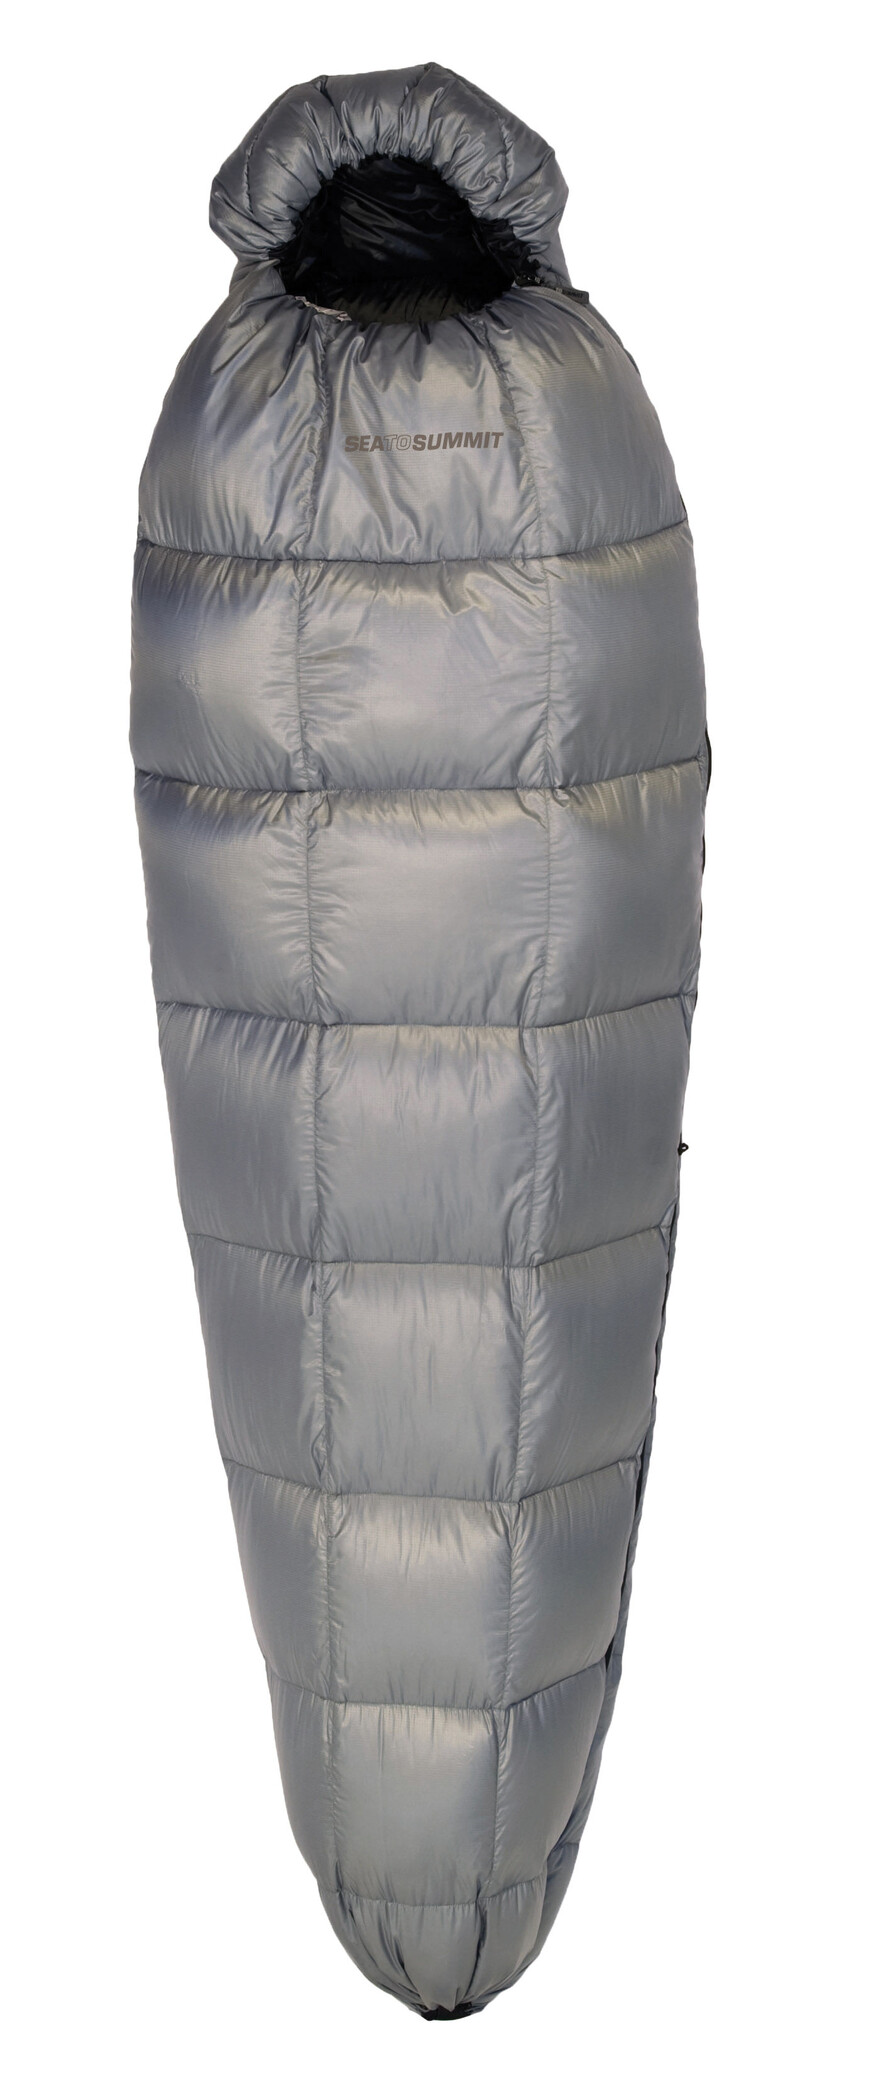 Sea to Summit Micro McIII Sleeping Bag long, silver | Misc. Transportation and Storage